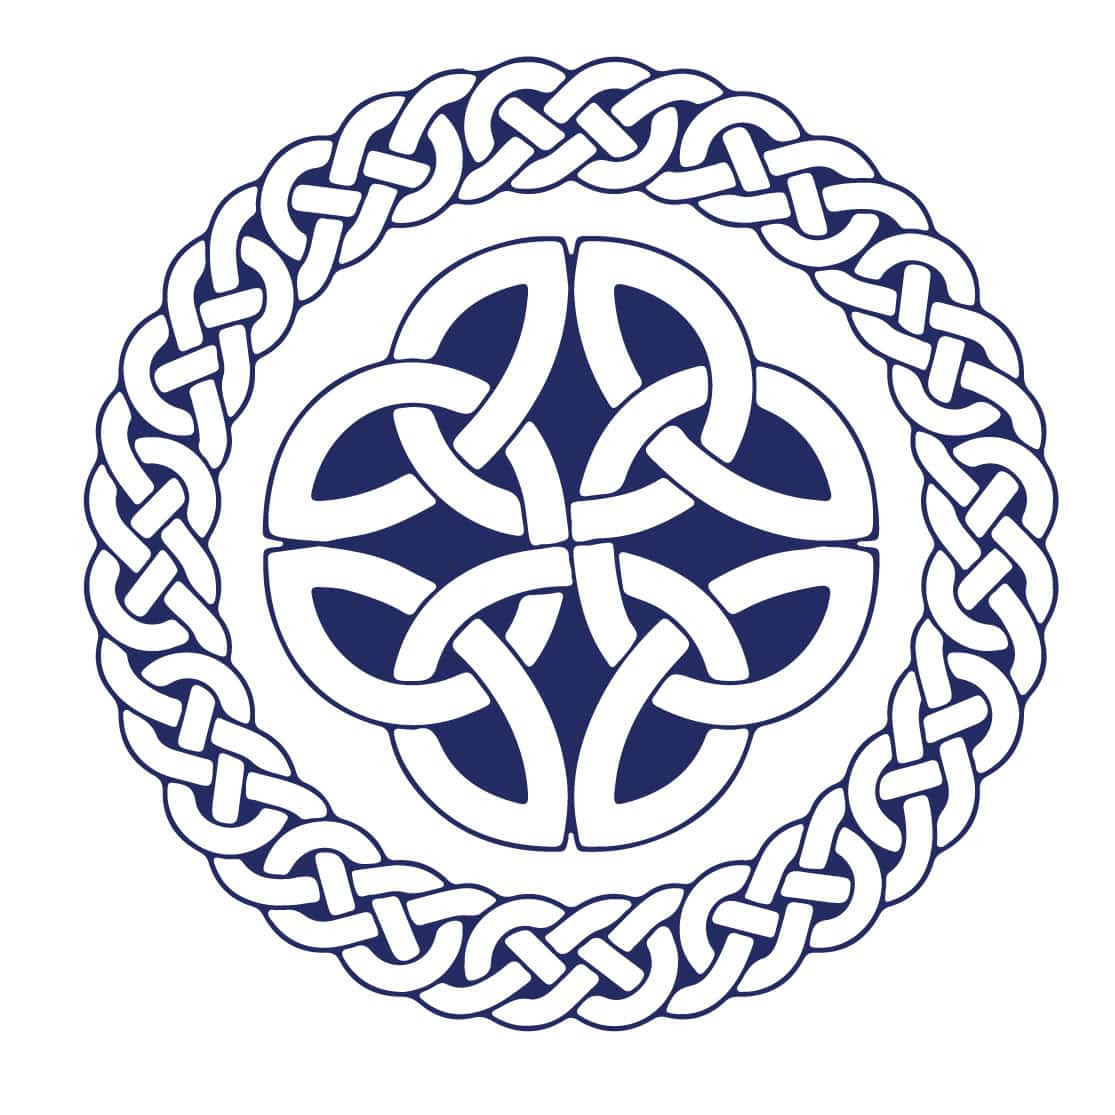 The Celtic Knot Symbol And Its Meaning Mythologiannet